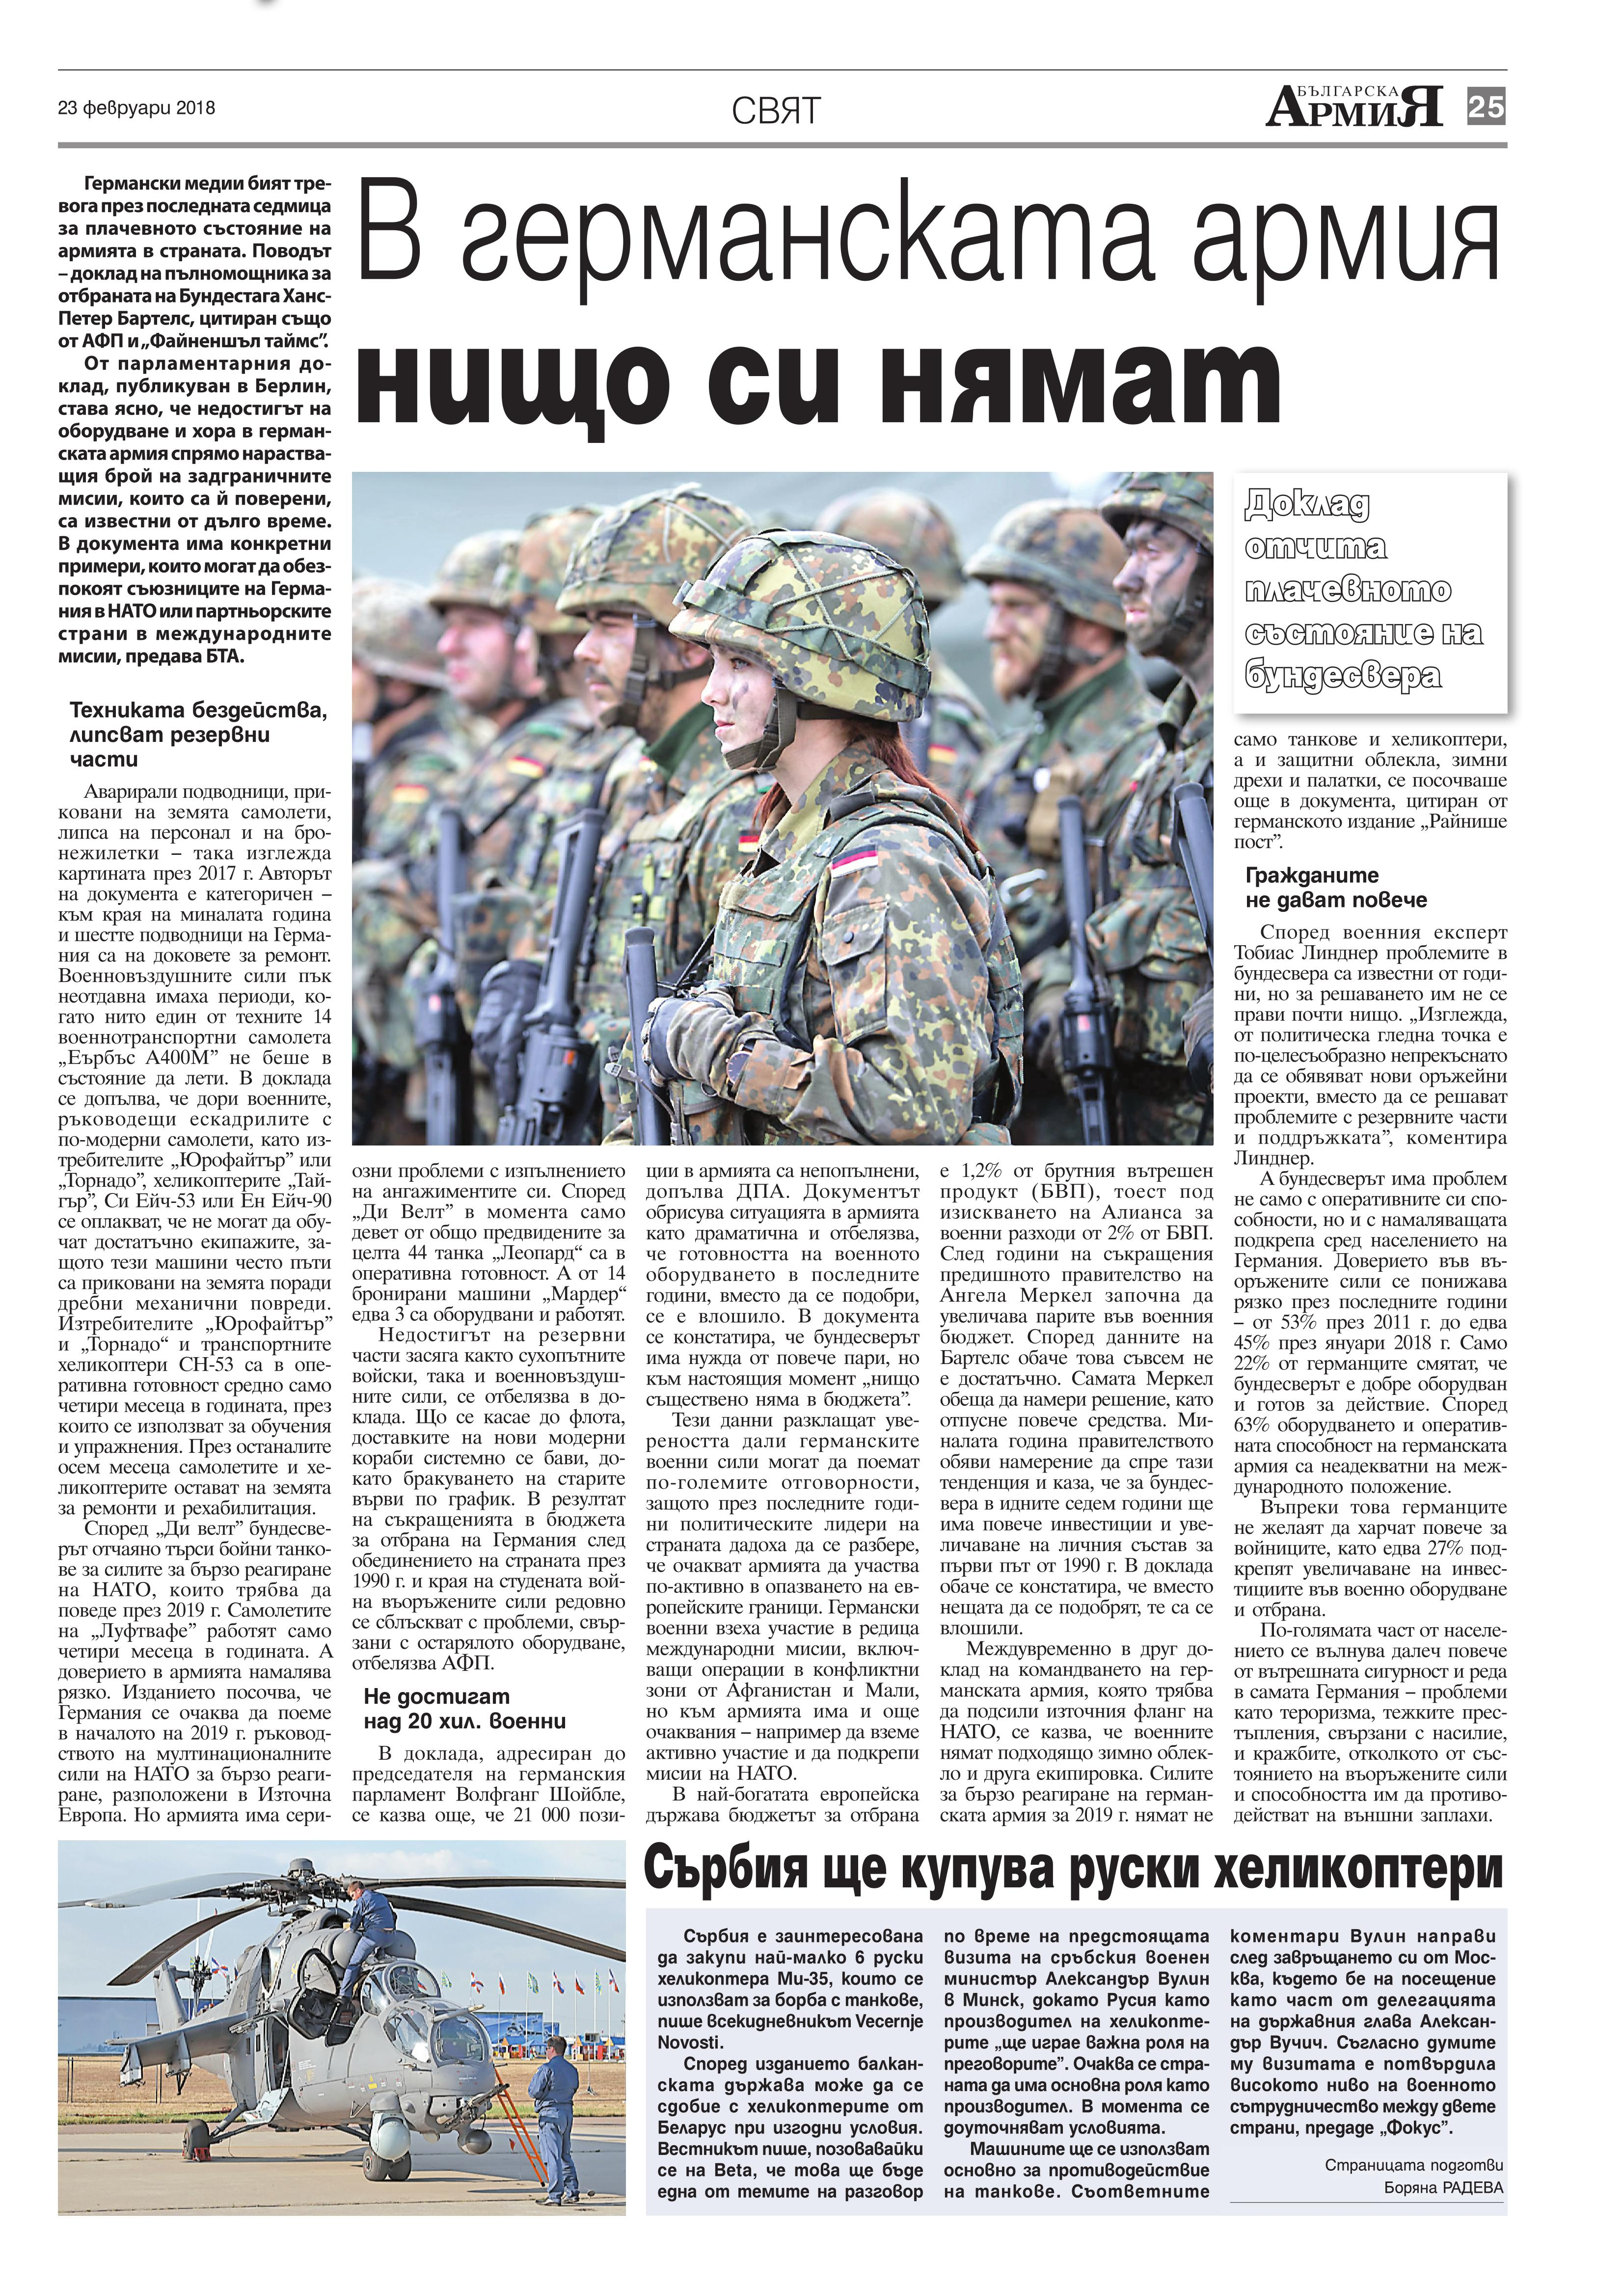 http://armymedia.bg/wp-content/uploads/2015/06/25.page1_-35.jpg